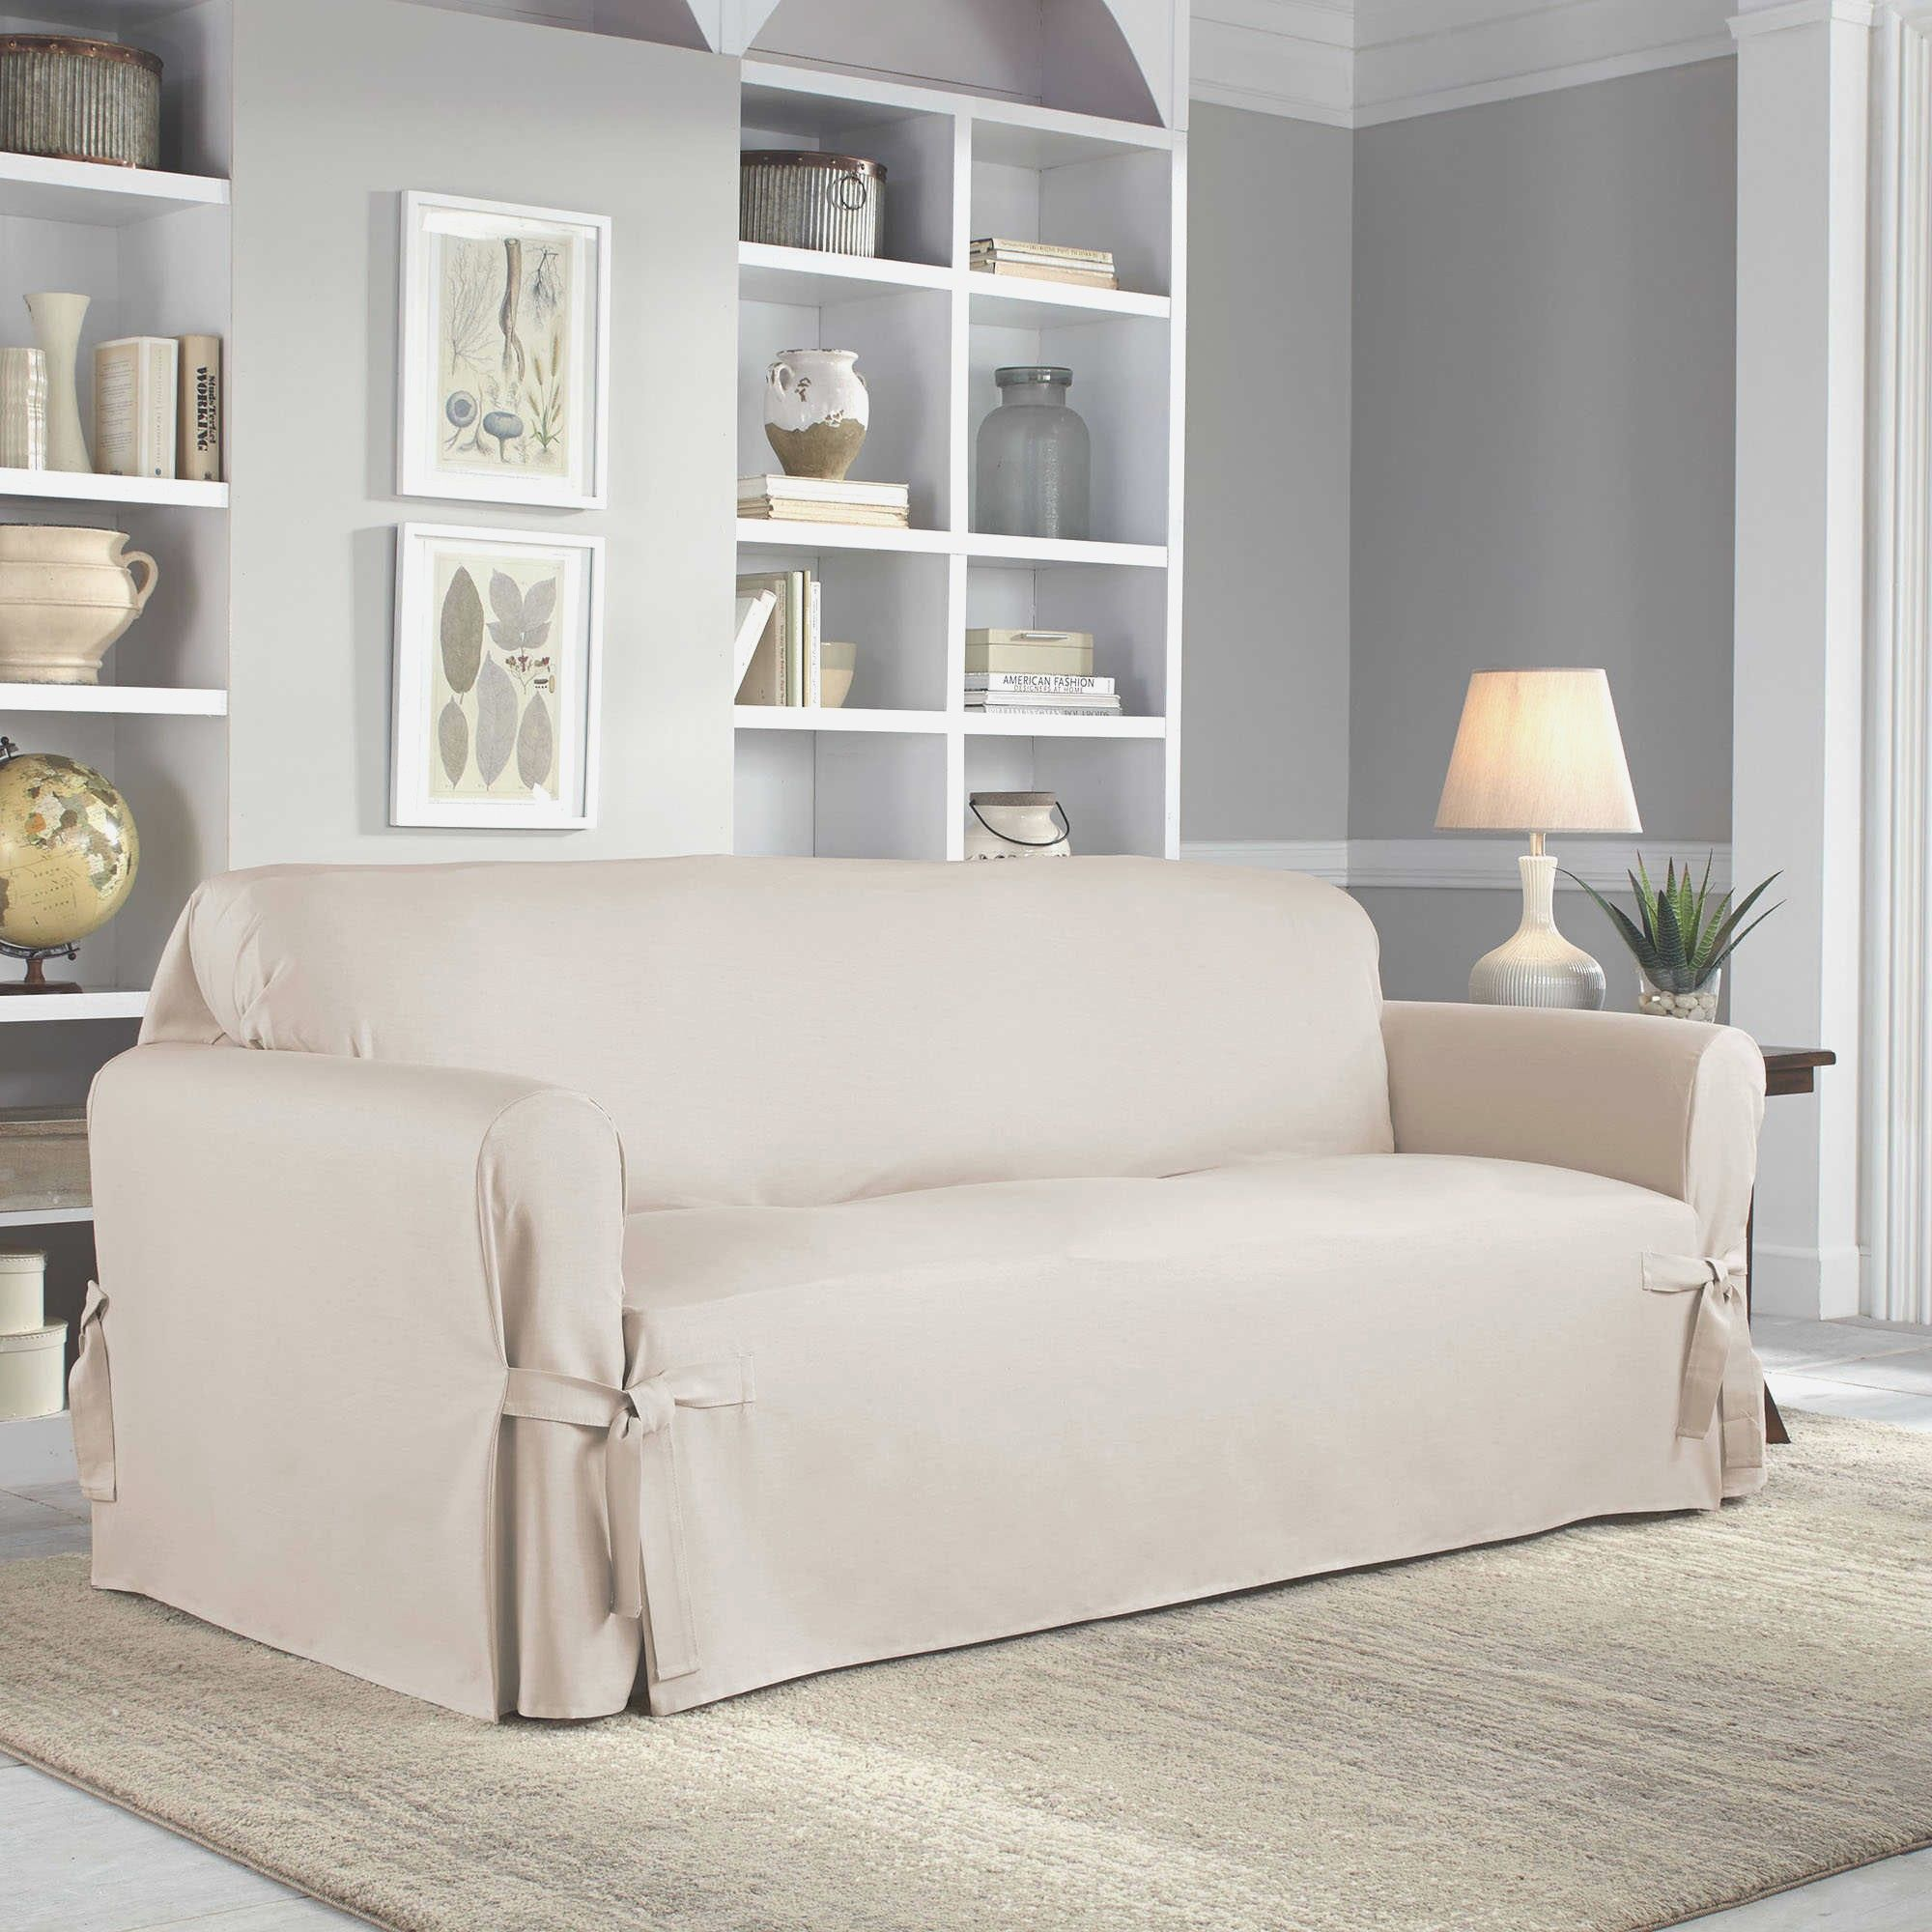 for additional com cover of covers l marvelous slipcovers custom any with loveseat shaped aifaresidency online sofa and couch